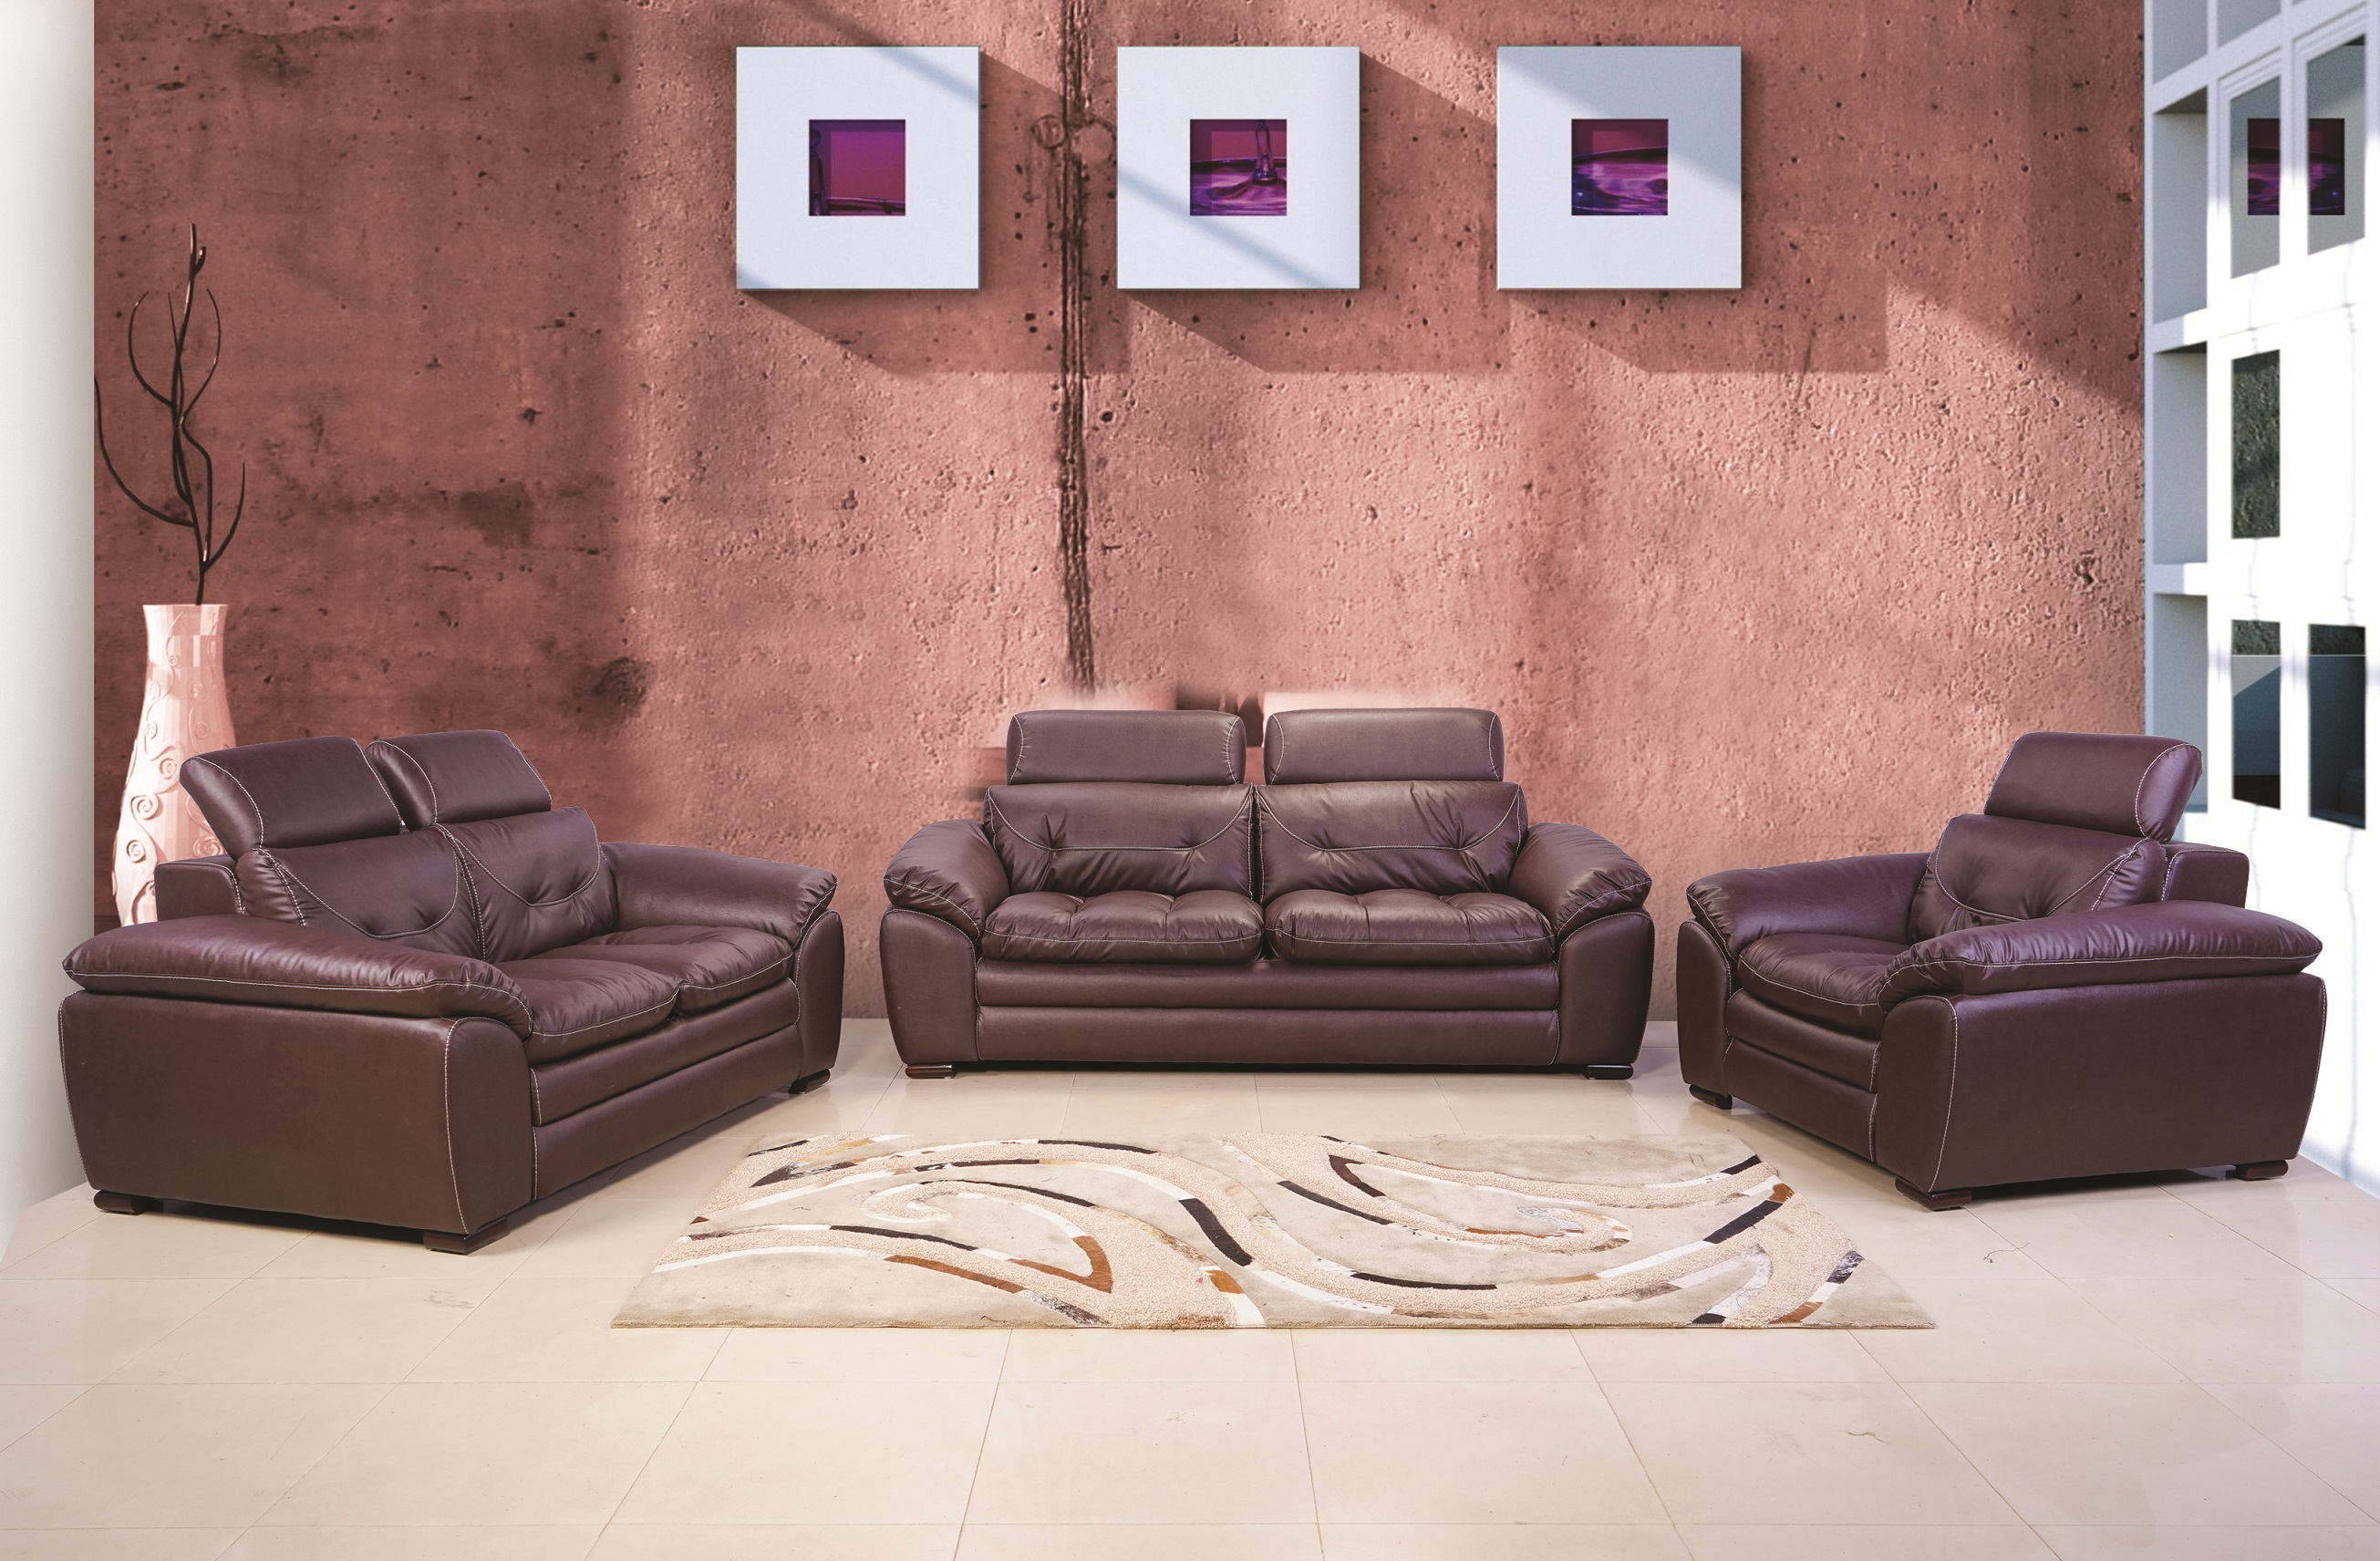 Sofa Bentley 3 2 1 In Leathrite Pvc Sofa Indroyal Furnitures Shop Home Furniture Online From Indroyal Online Store Buy Sofas Dining Tables And Chairs Side Tables And